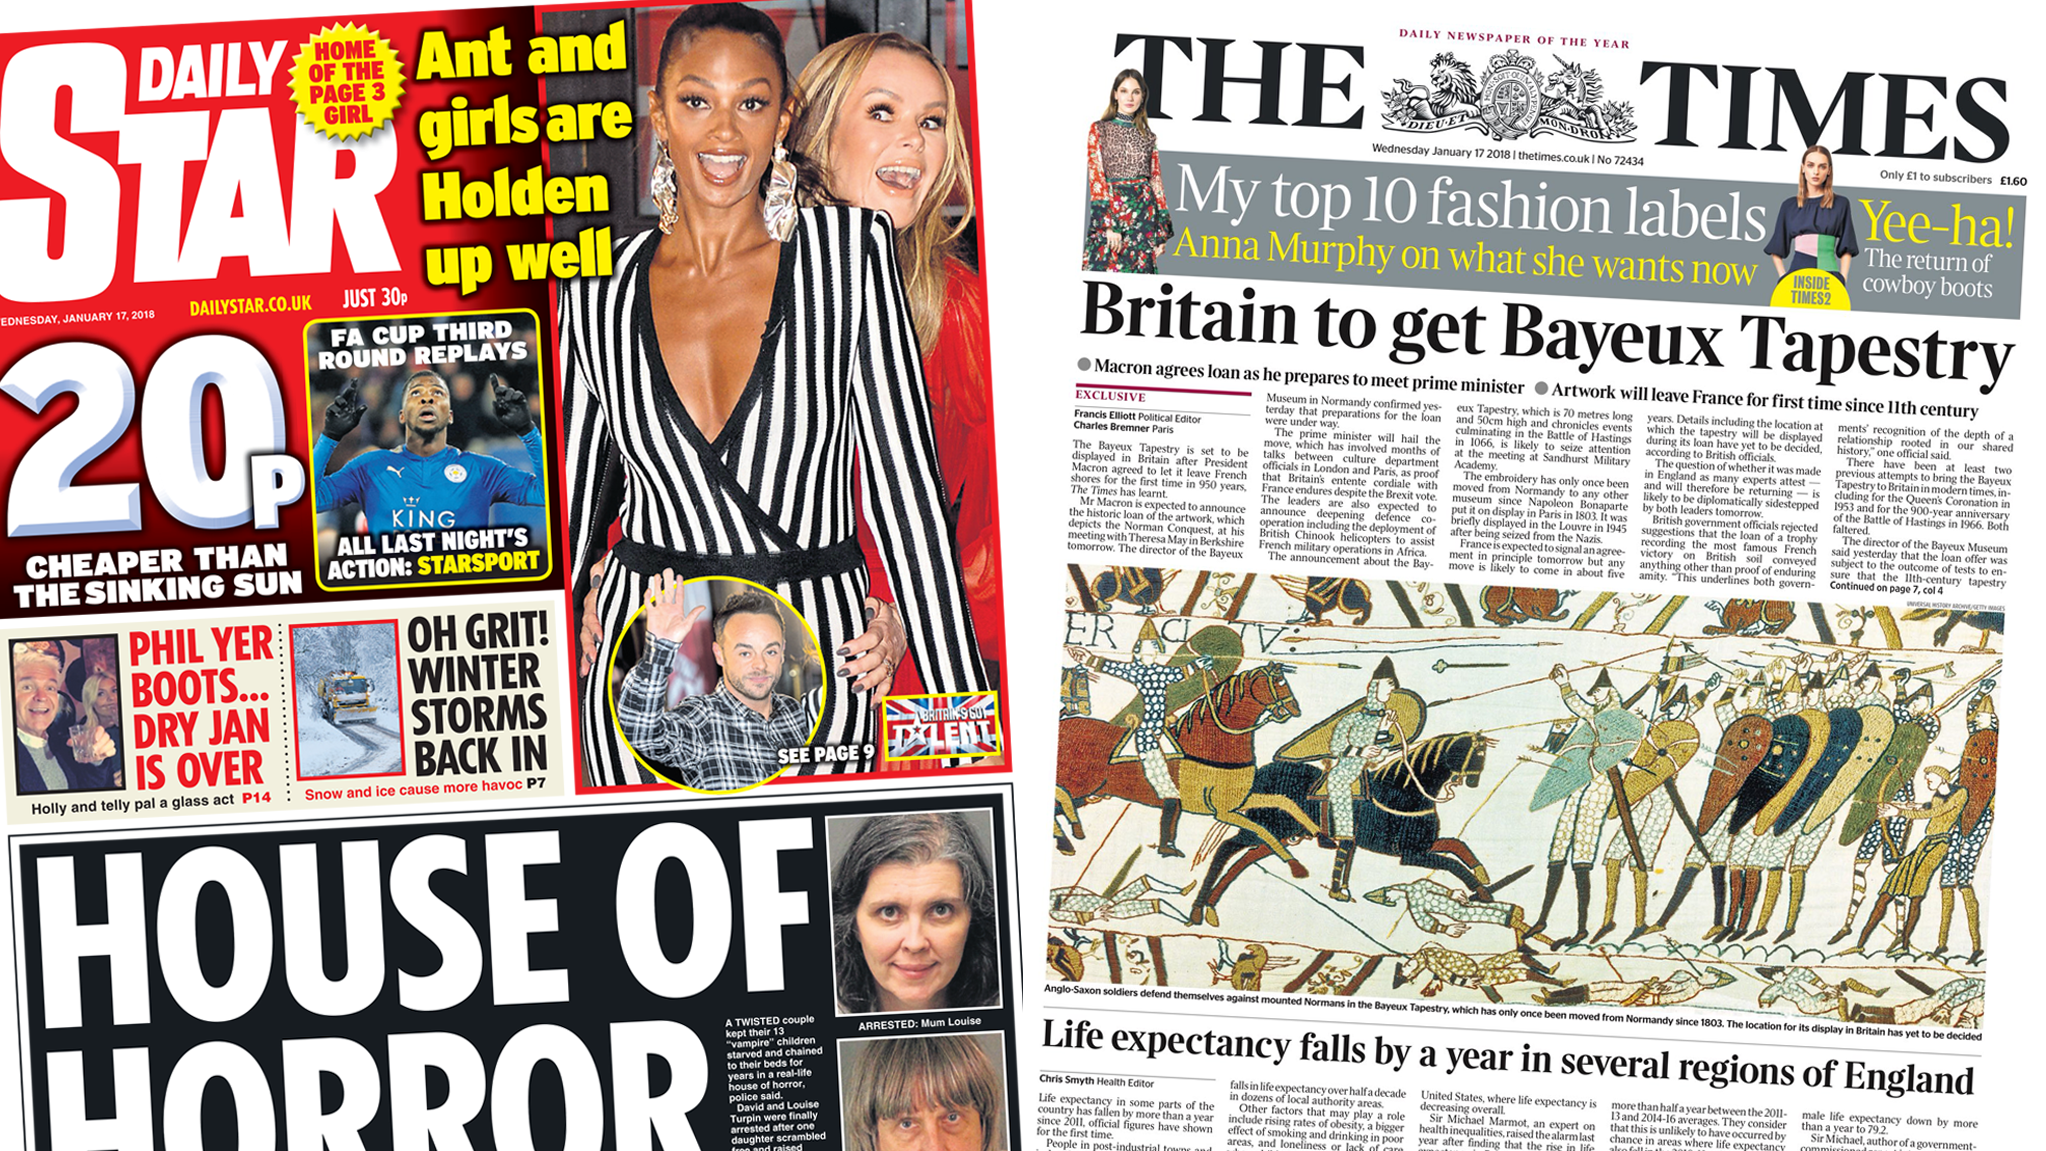 Newspaper headlines: 'House of Horror' and Bayeux